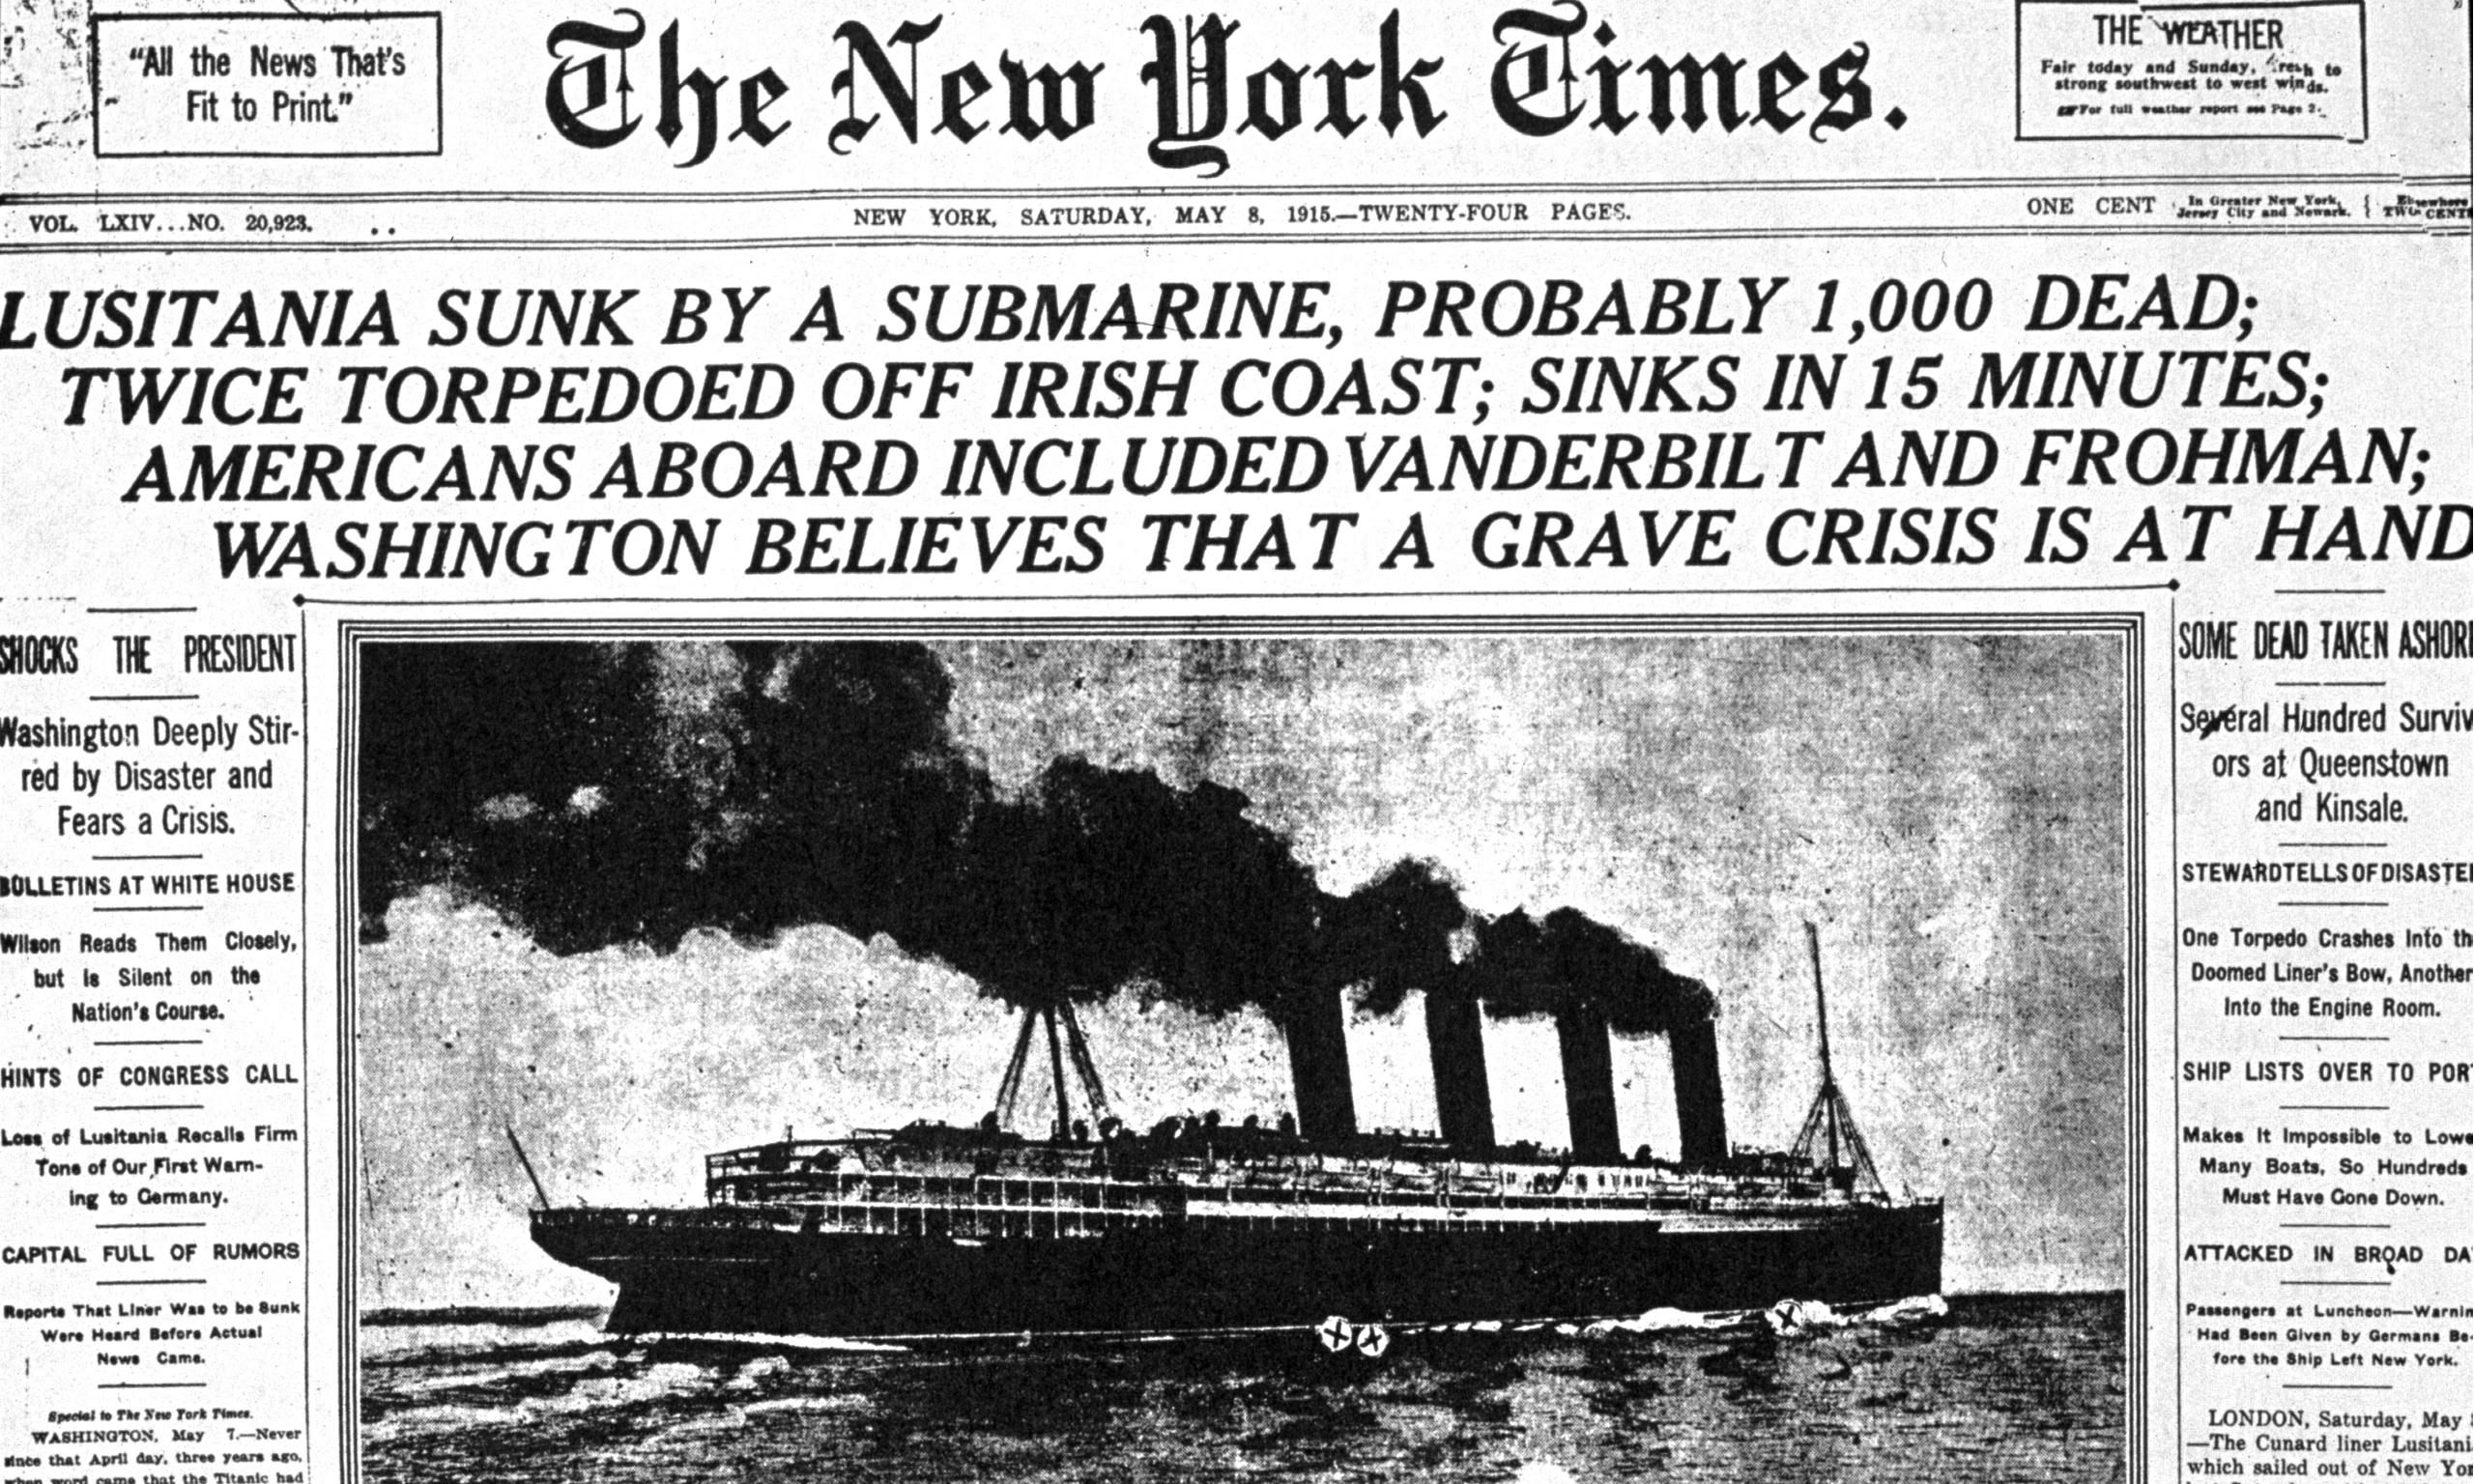 Rms lusitania wreck rms lusitania wreck quotes - New York Times Reports The Cunard Liner Lusitania Sunk May 8 1915